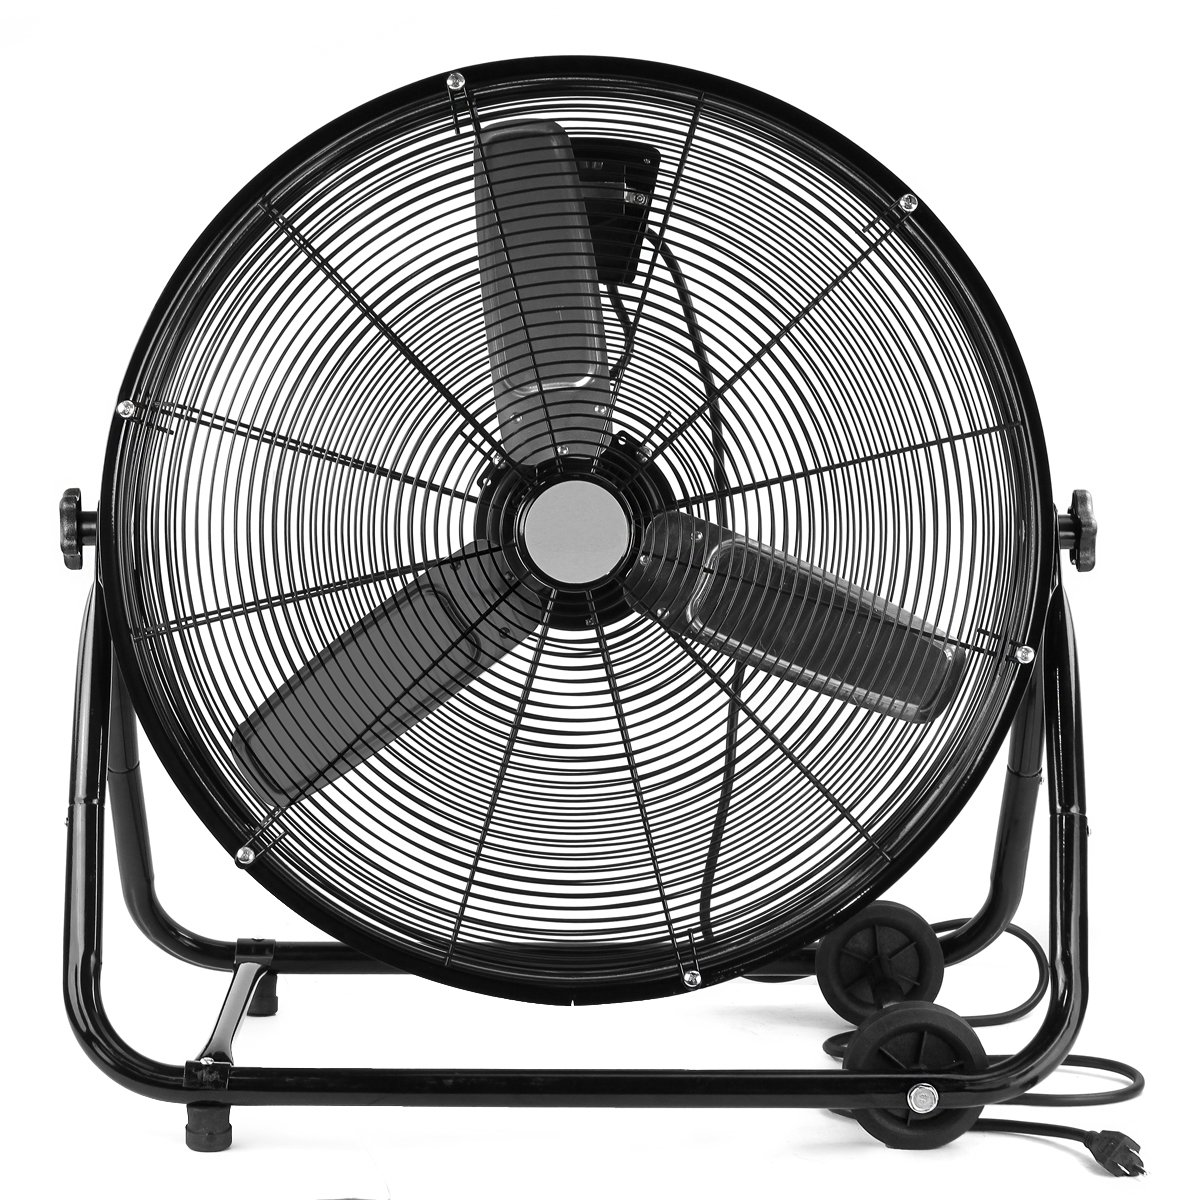 XtremepowerUS 24″ Inch Heavy Duty Rolling Velocity Drum Floor Fan